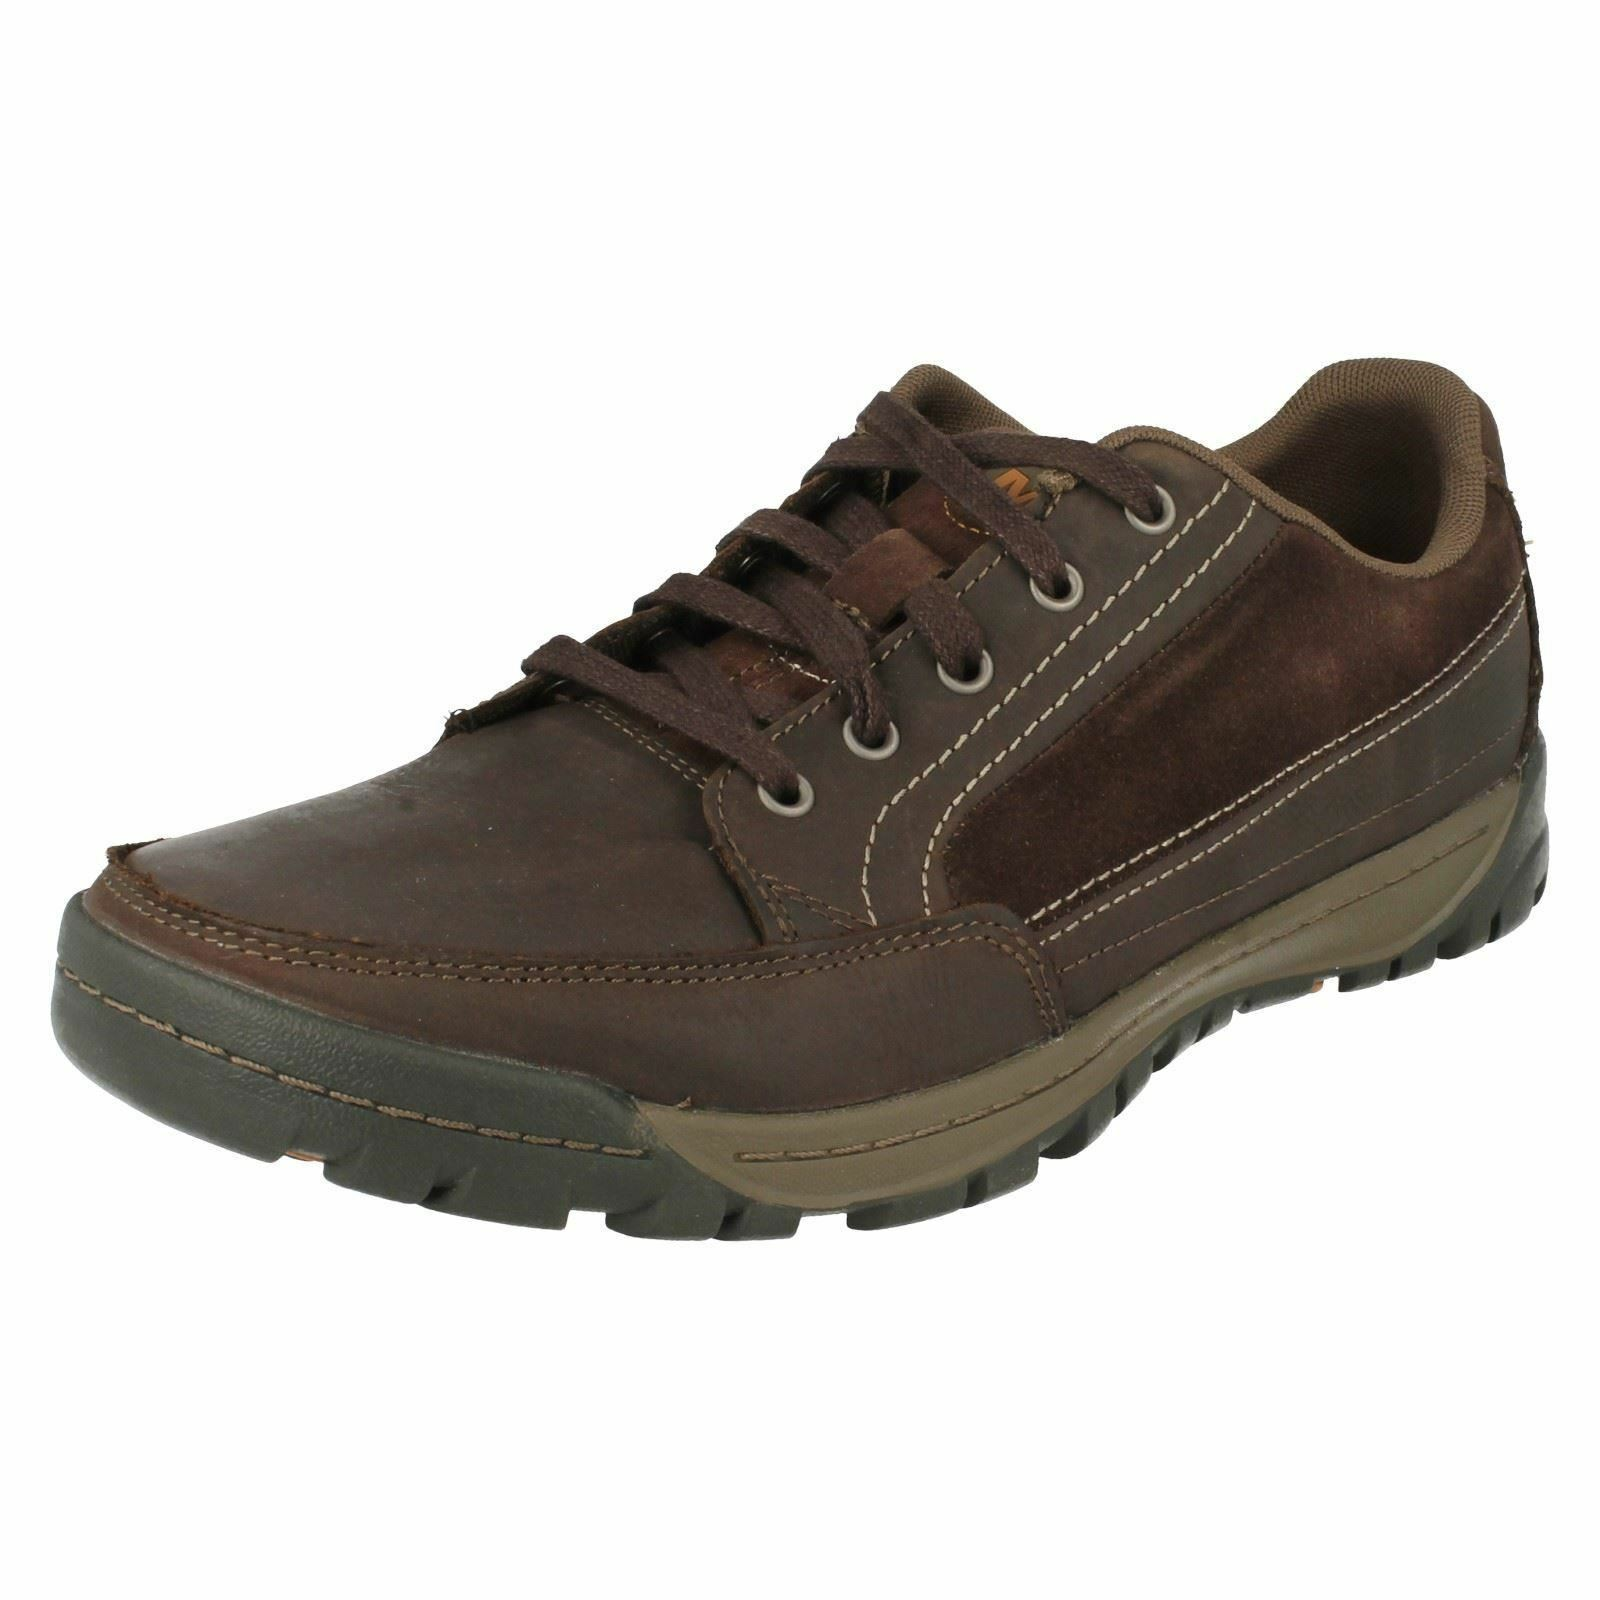 Mens Merrell Traveler Sphere J69107 Espresso Brown Leather Lace Up Trainers